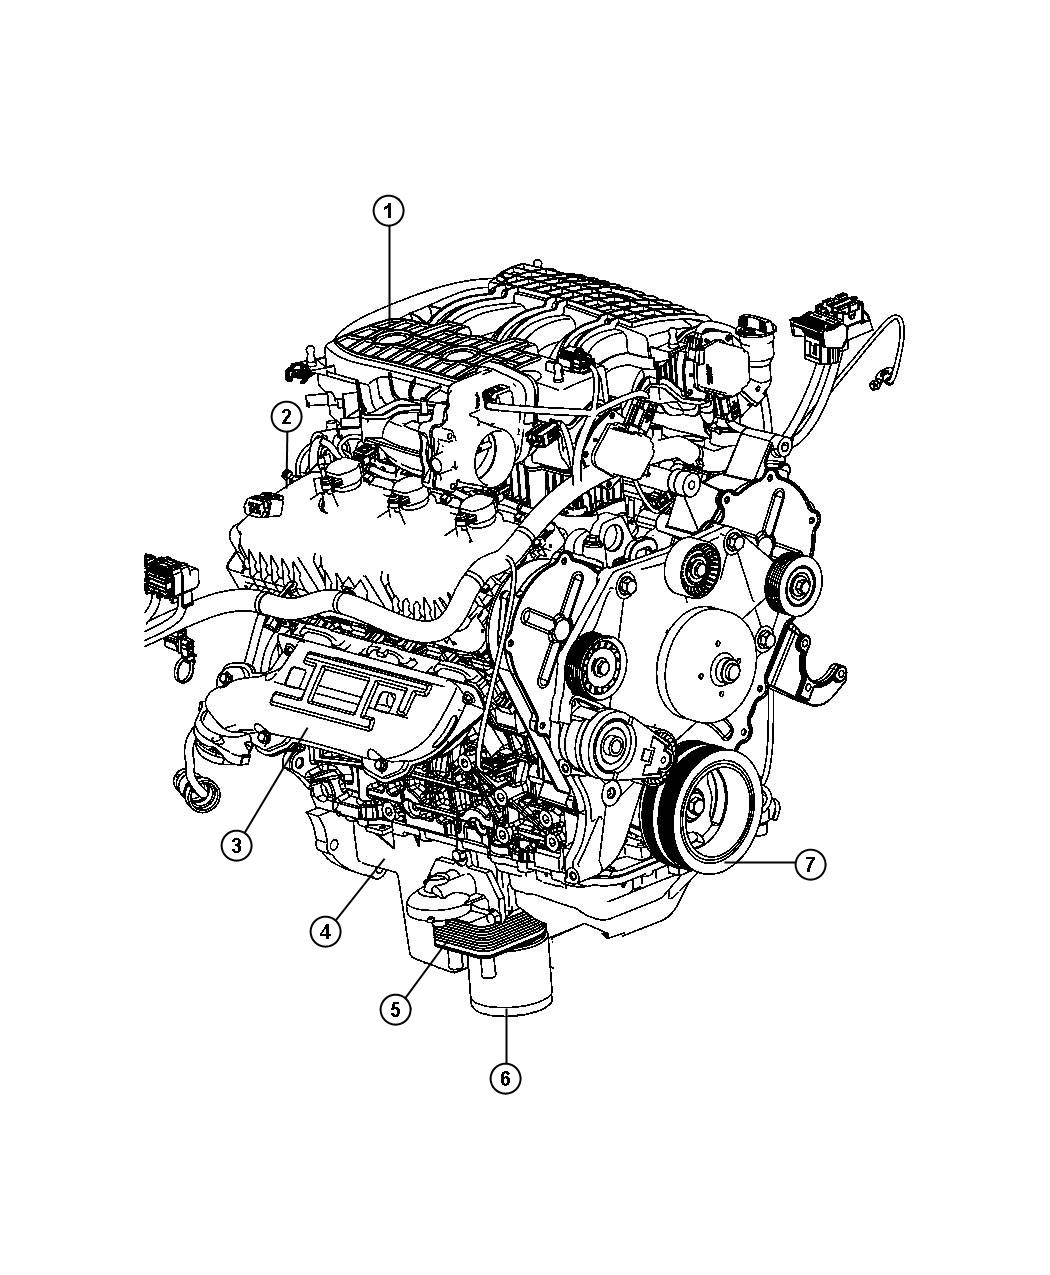 Dodge Nitro Engine Assembly And Identification 4 0l Egs